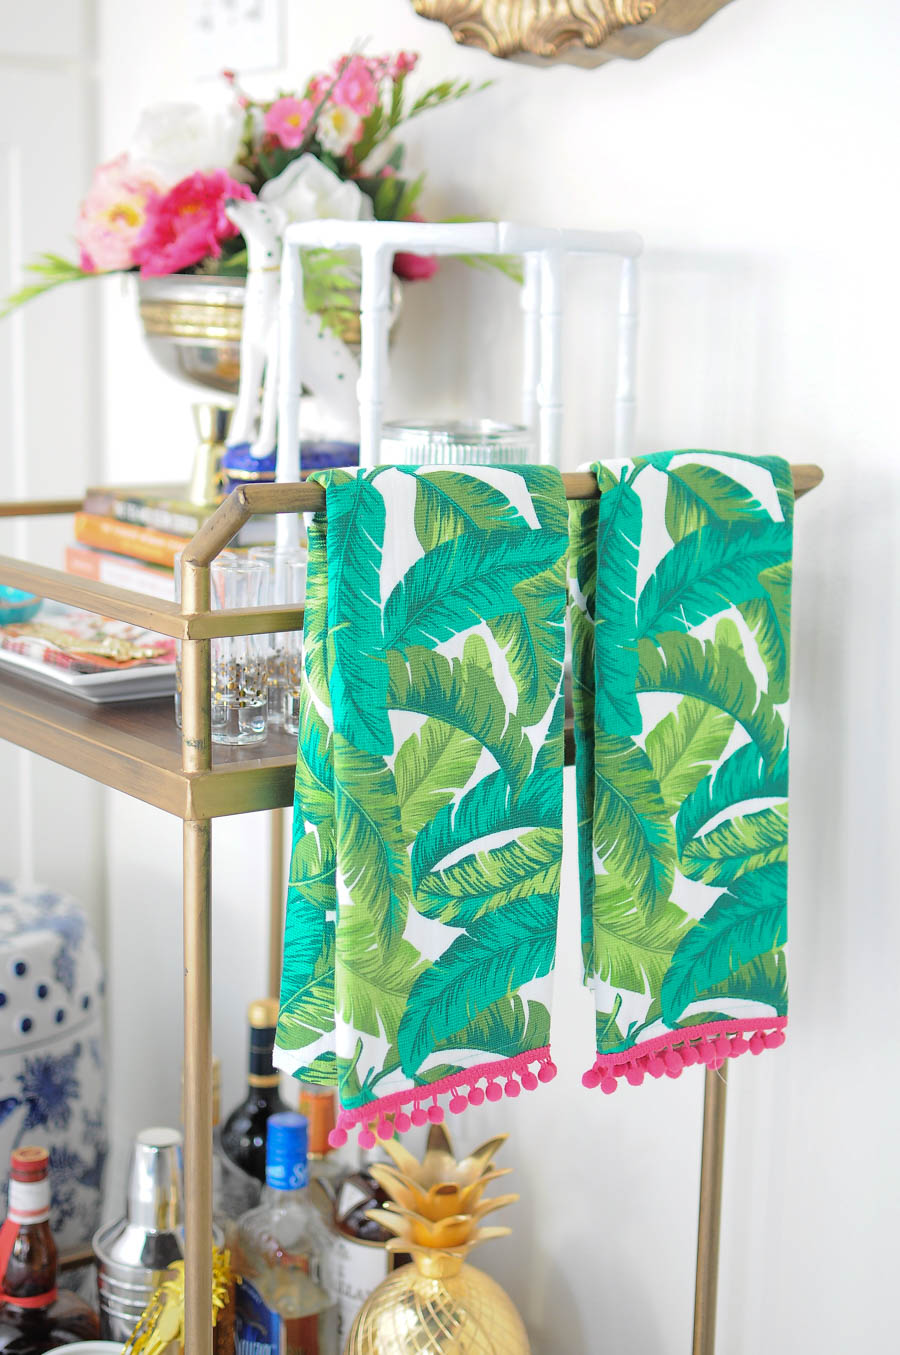 Palm towels add a Palm Beach vibe to a gold bar cart decorated for spring with flowers, candles, and other gorgeous decor accents.